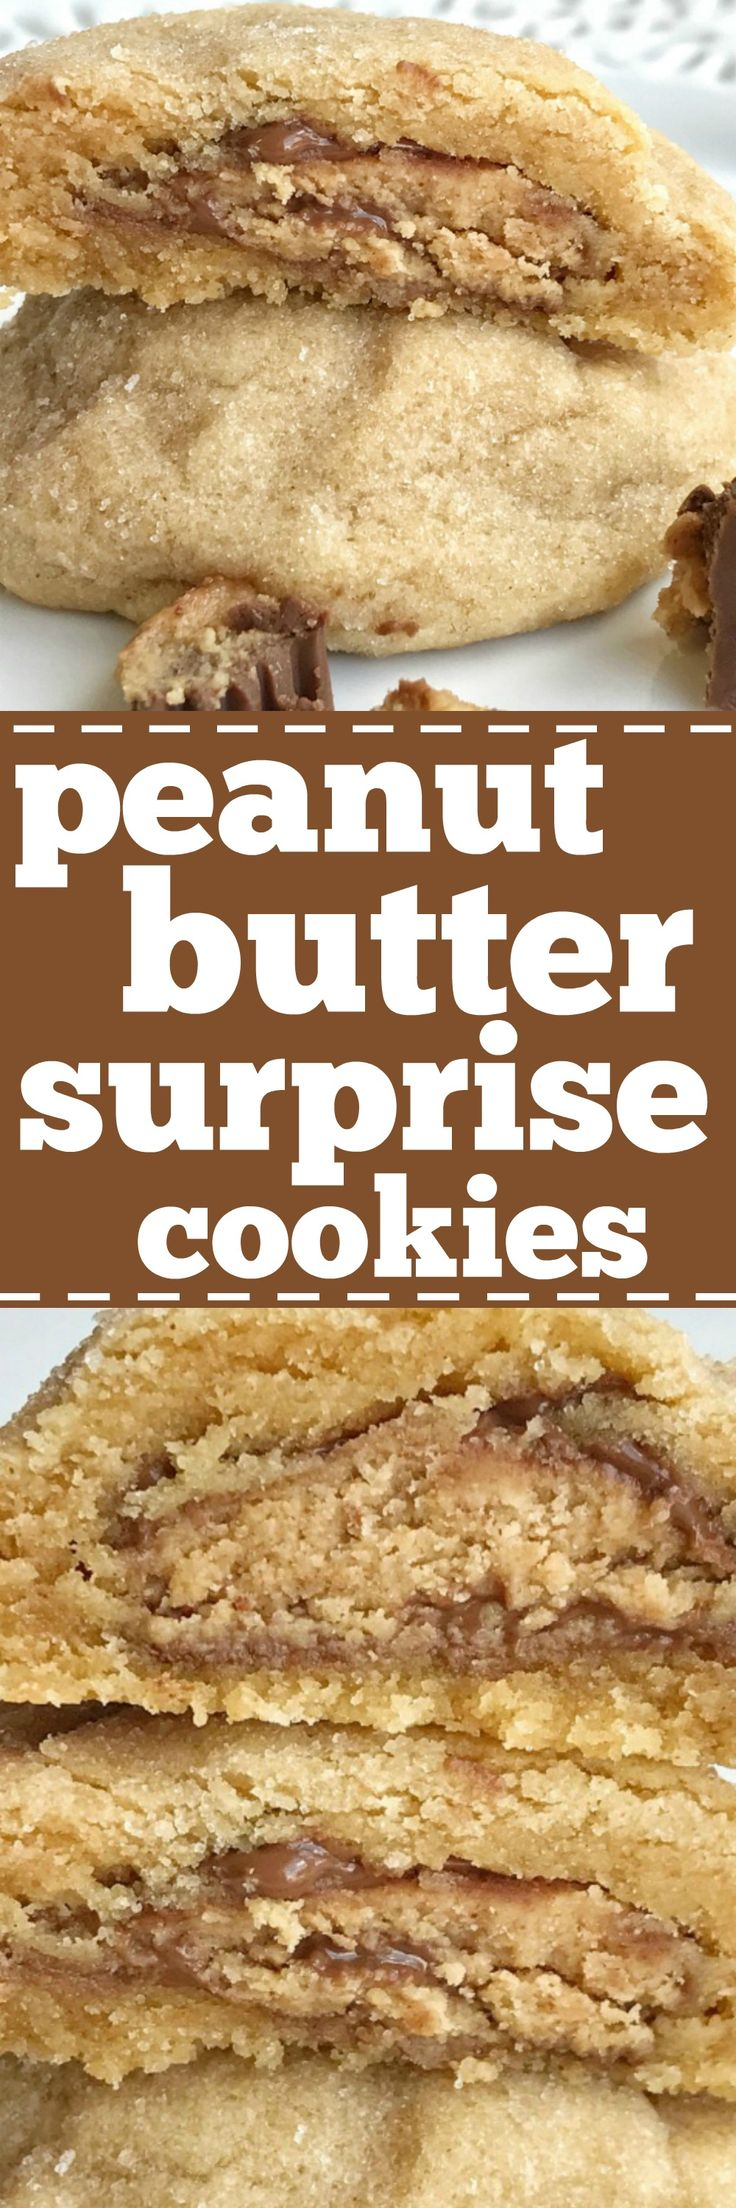 Thick & puffy peanut butter cookies stuffed with a surprise of a miniature Reese's peanut butter cup!